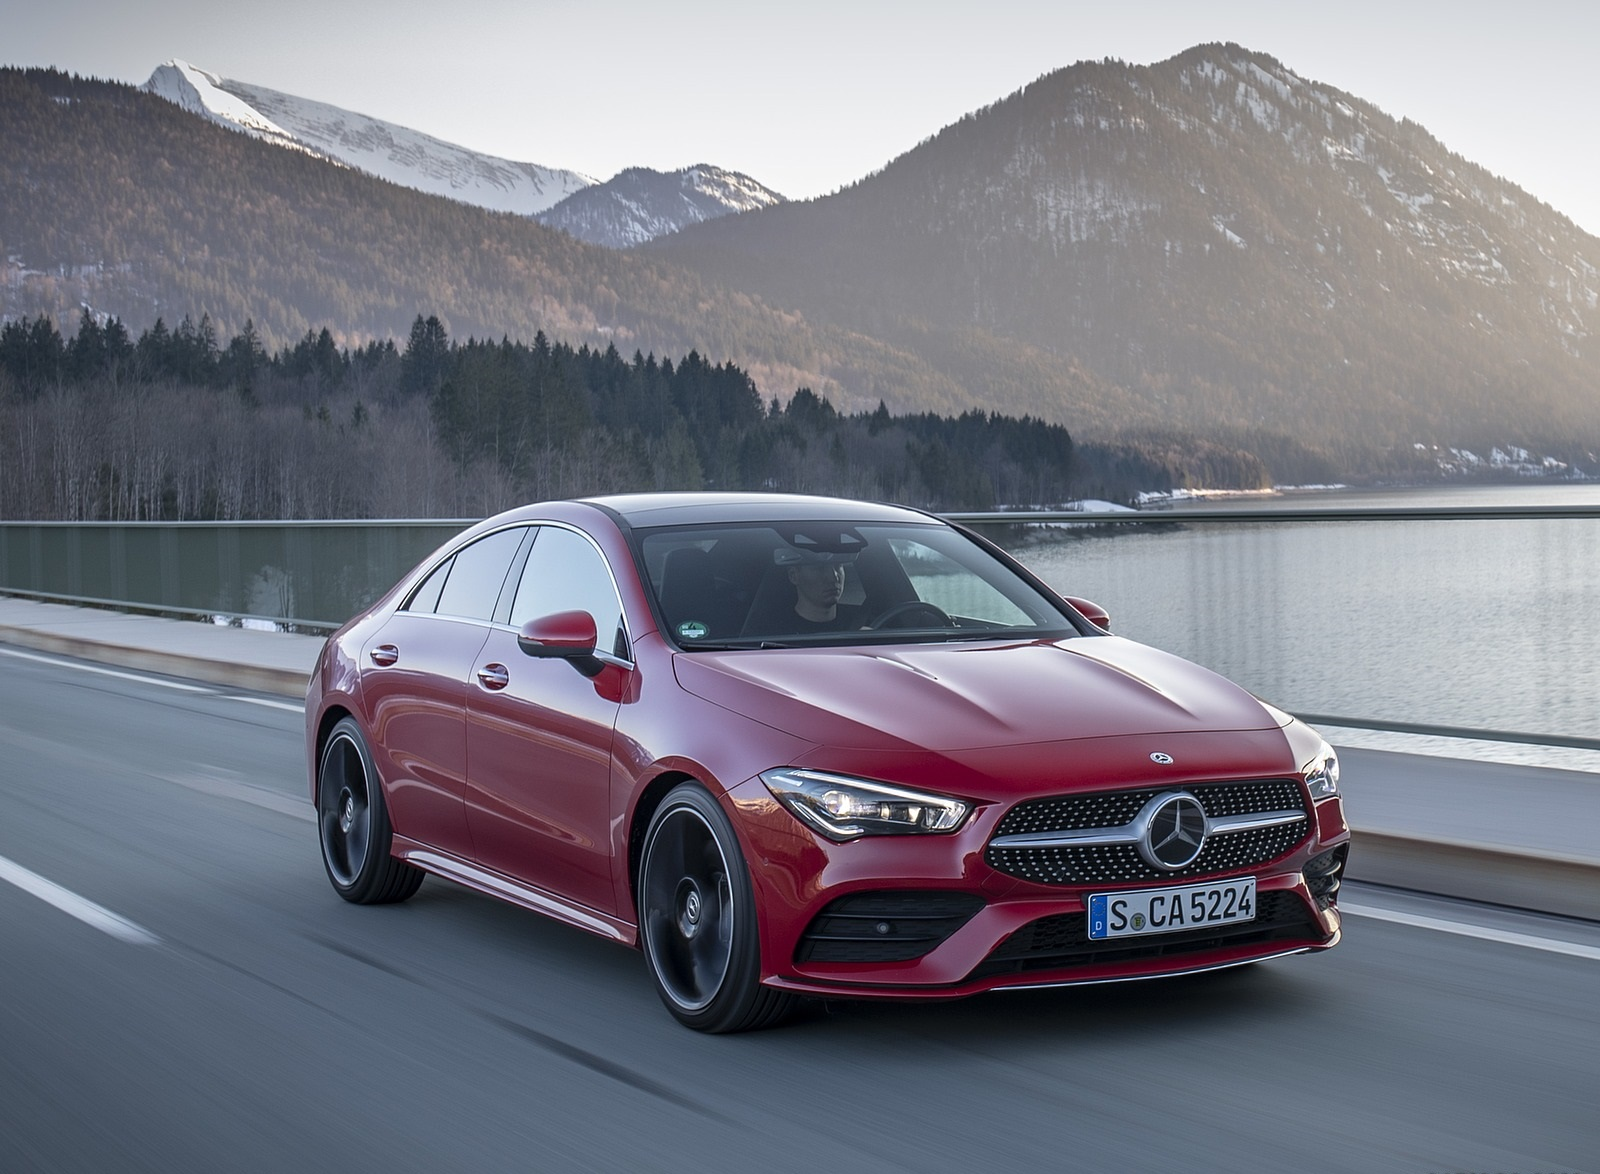 2020 Mercedes-Benz CLA 250 4MATIC Coupe AMG Line (Color: Jupiter Red) Front Three-Quarter Wallpapers (4)